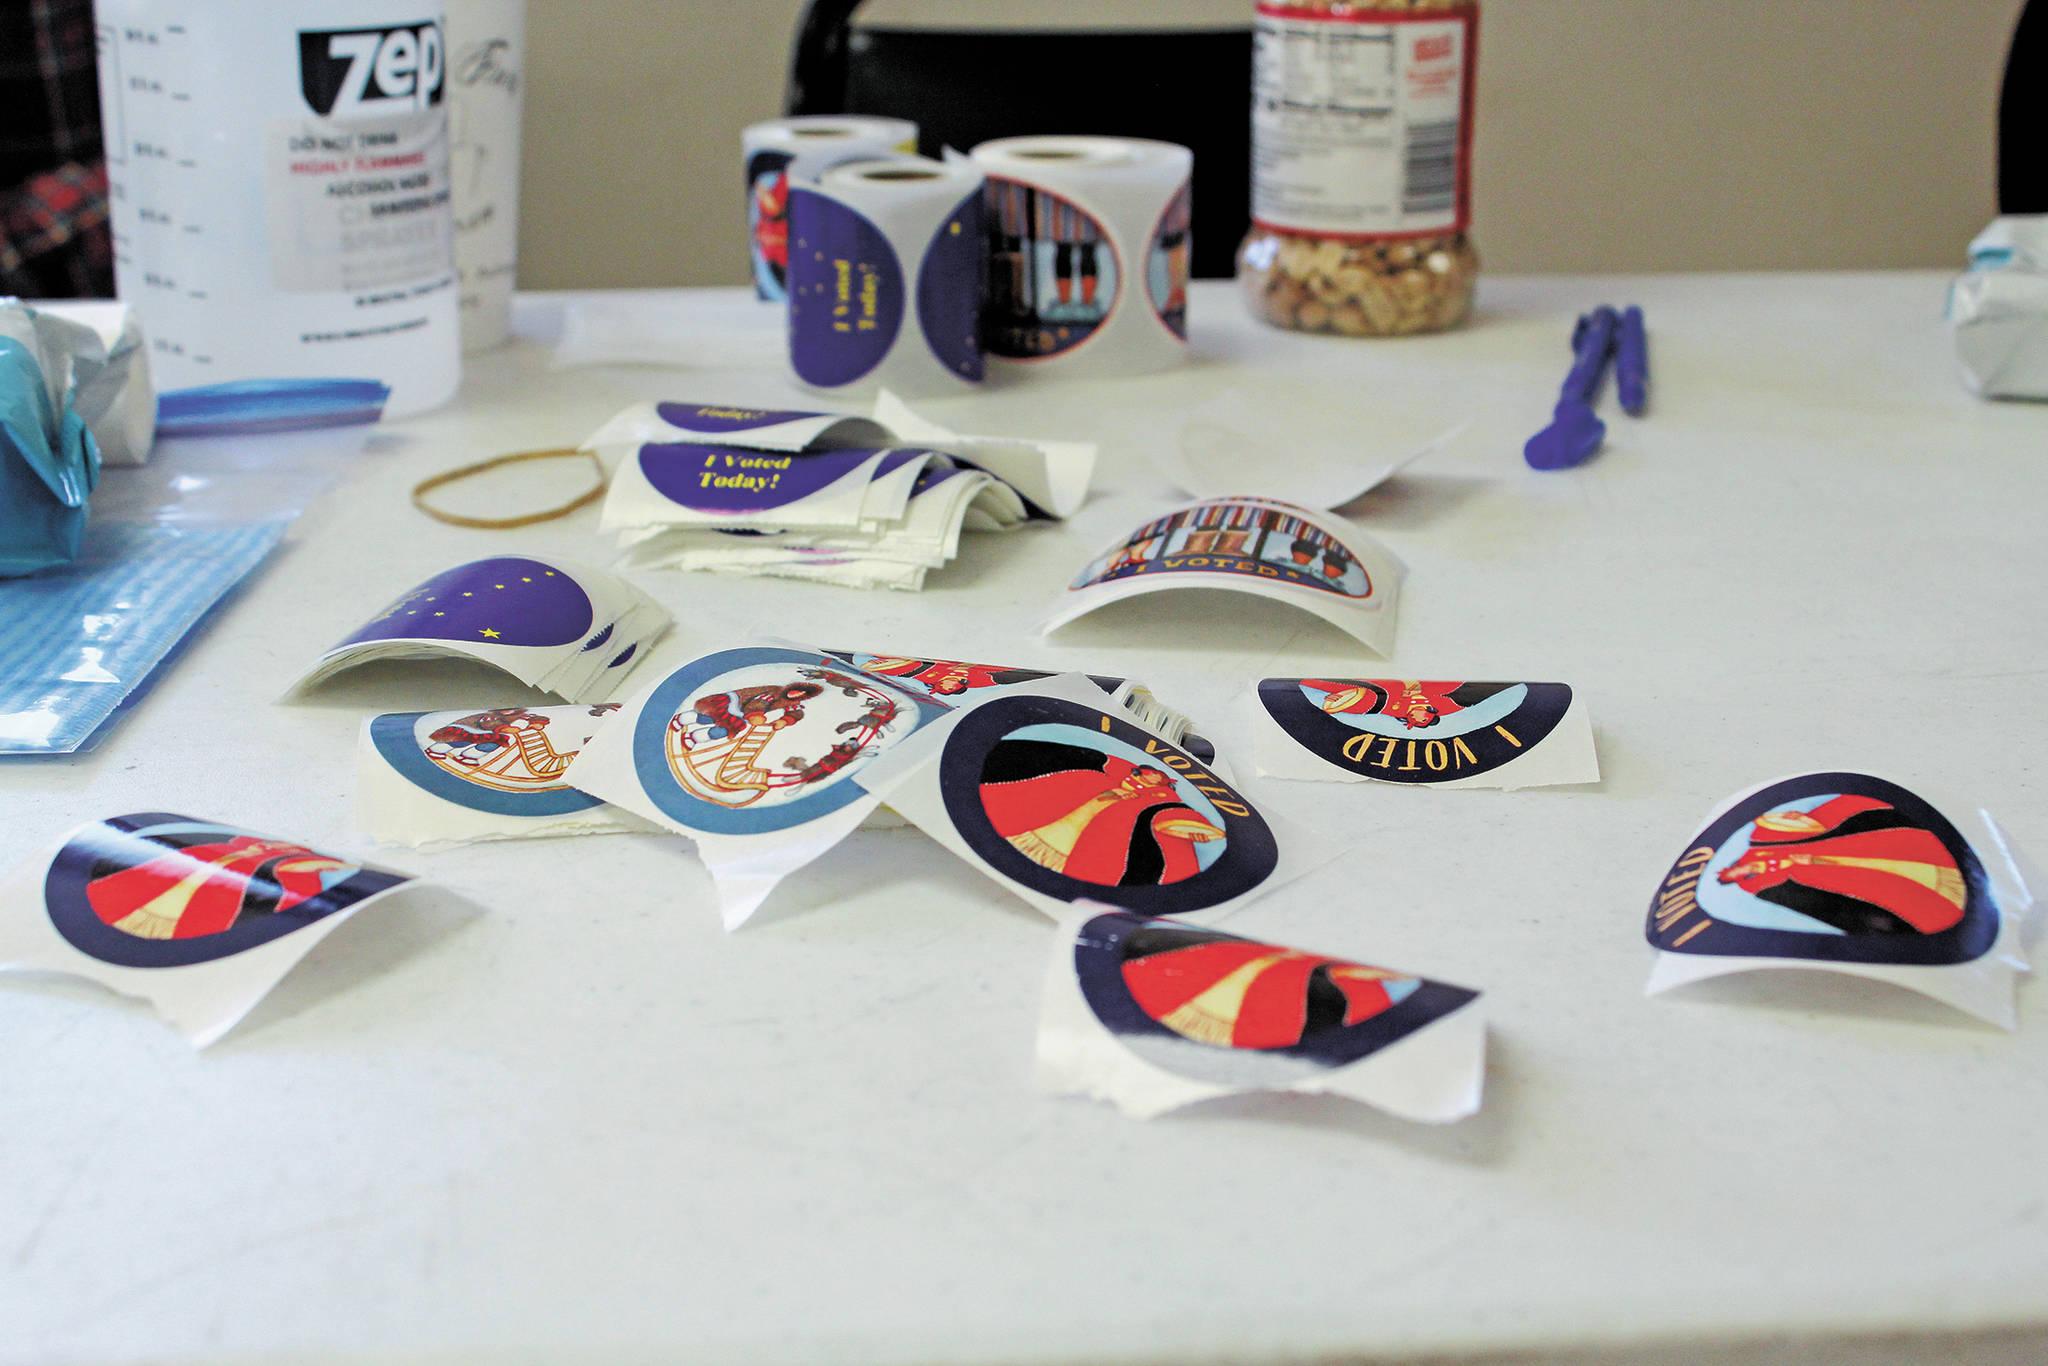 """I Voted"" stickers wait on a table in the Kachemak Community Center for voters to pick them up Tuesday, Nov. 3, 2020 in Kachemak City, Alaska. (Photo by Megan Pacer/Homer News)"